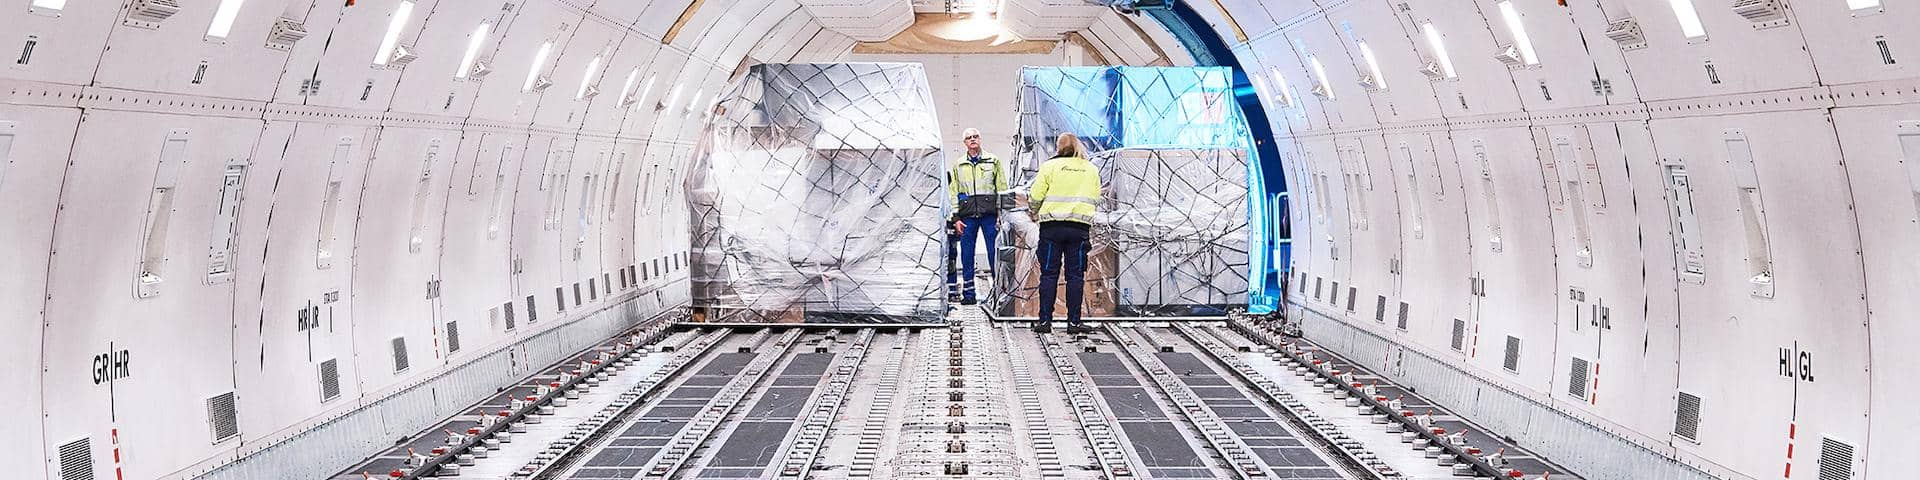 DB Schenker Air Freight Flightoperations Airplane Inside Loading